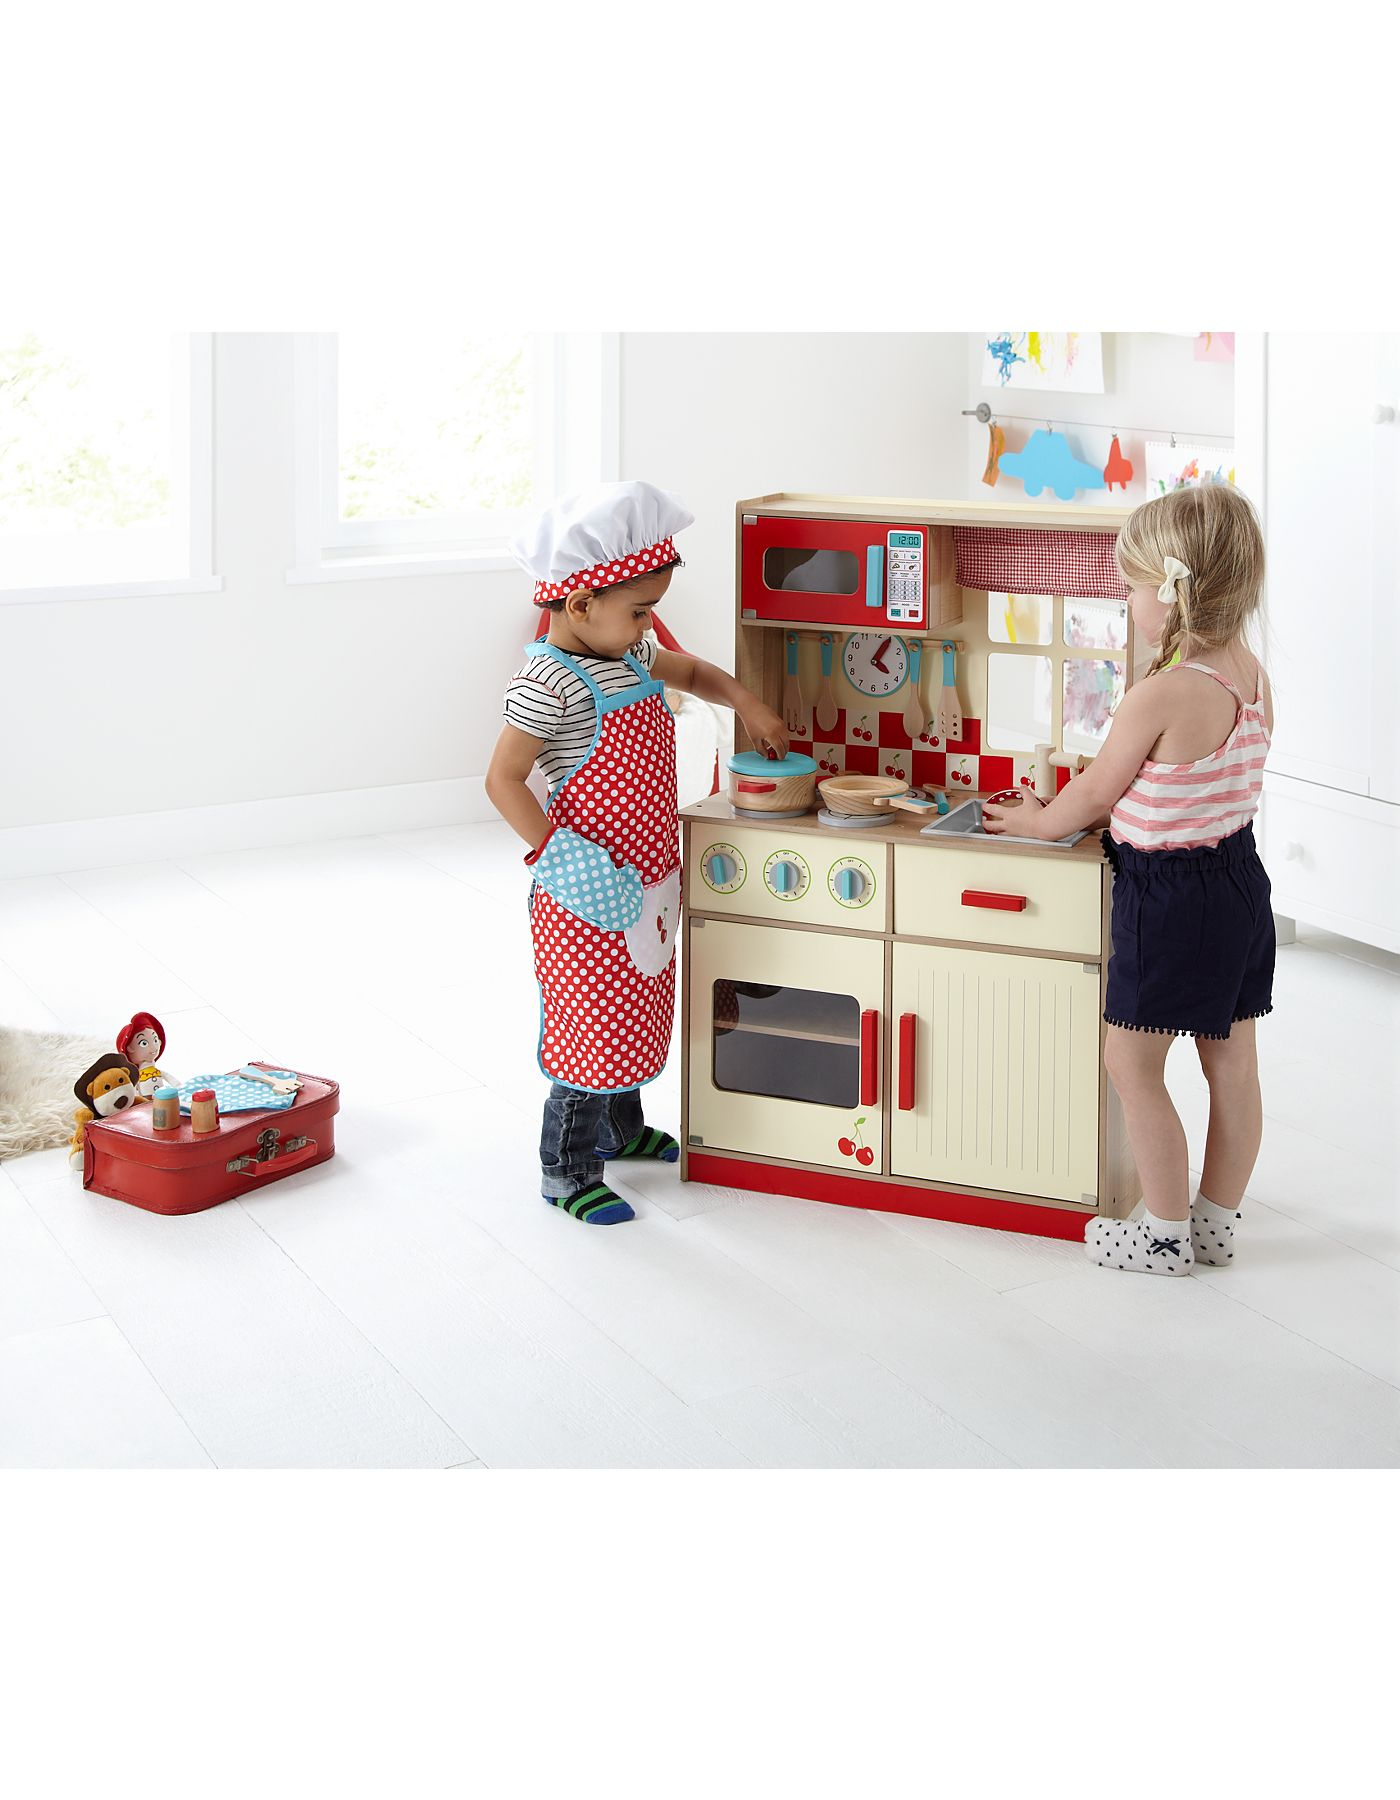 Home Deluxe Wooden Kitchen Up To 3 Years ASDA